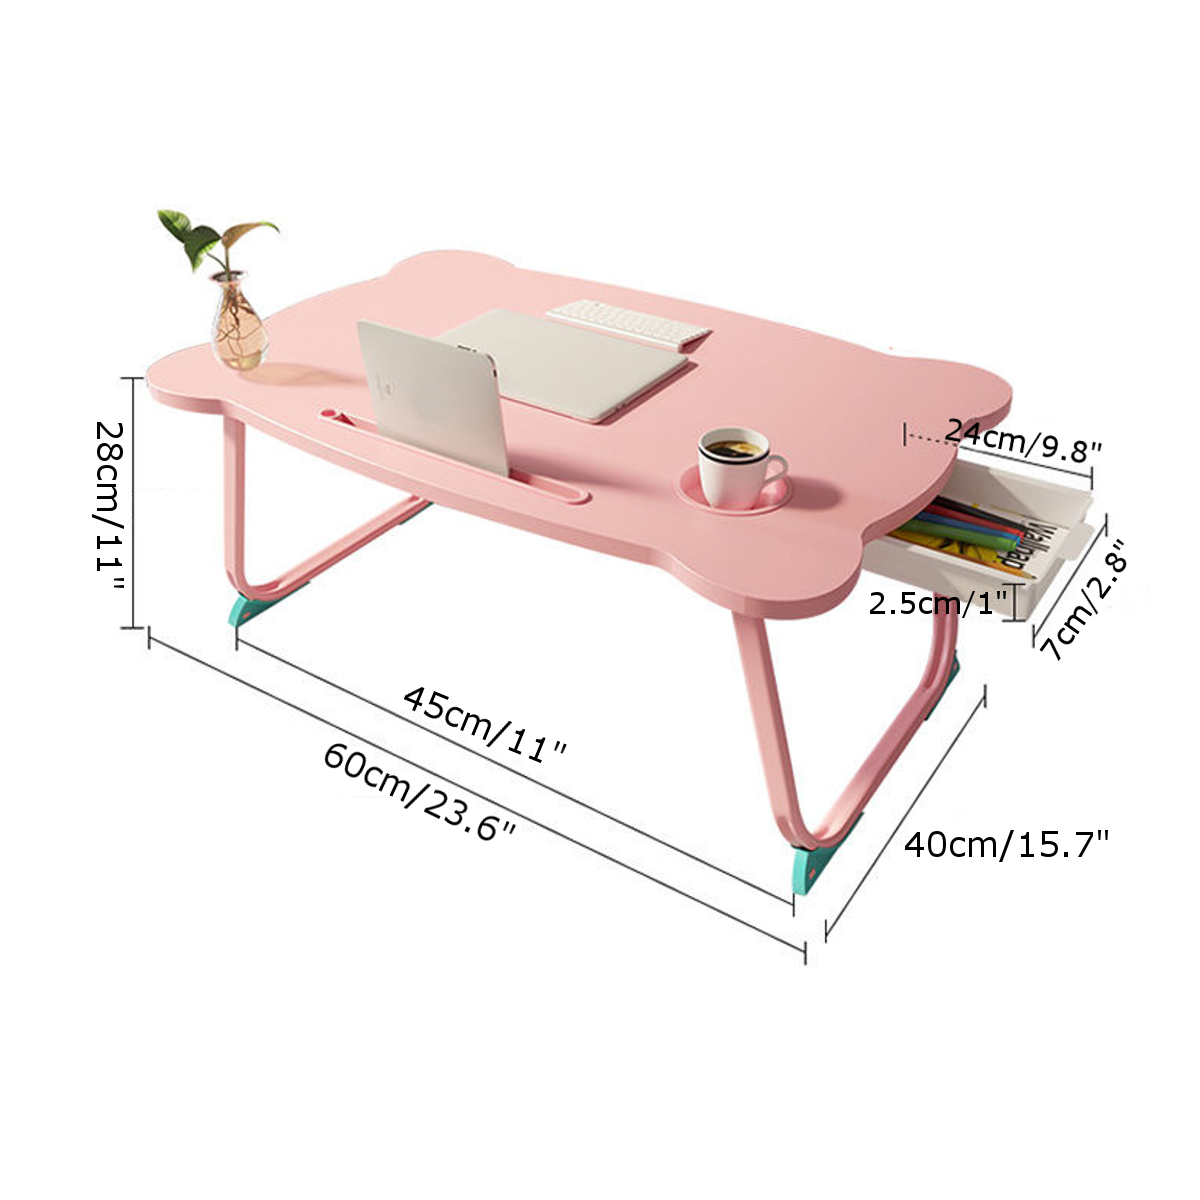 Study Table Desk Multi-functional Folding Laptop Stand Holder Wooden Foldable Computer Desk for Bed Sofa Tea Serving Table Stand